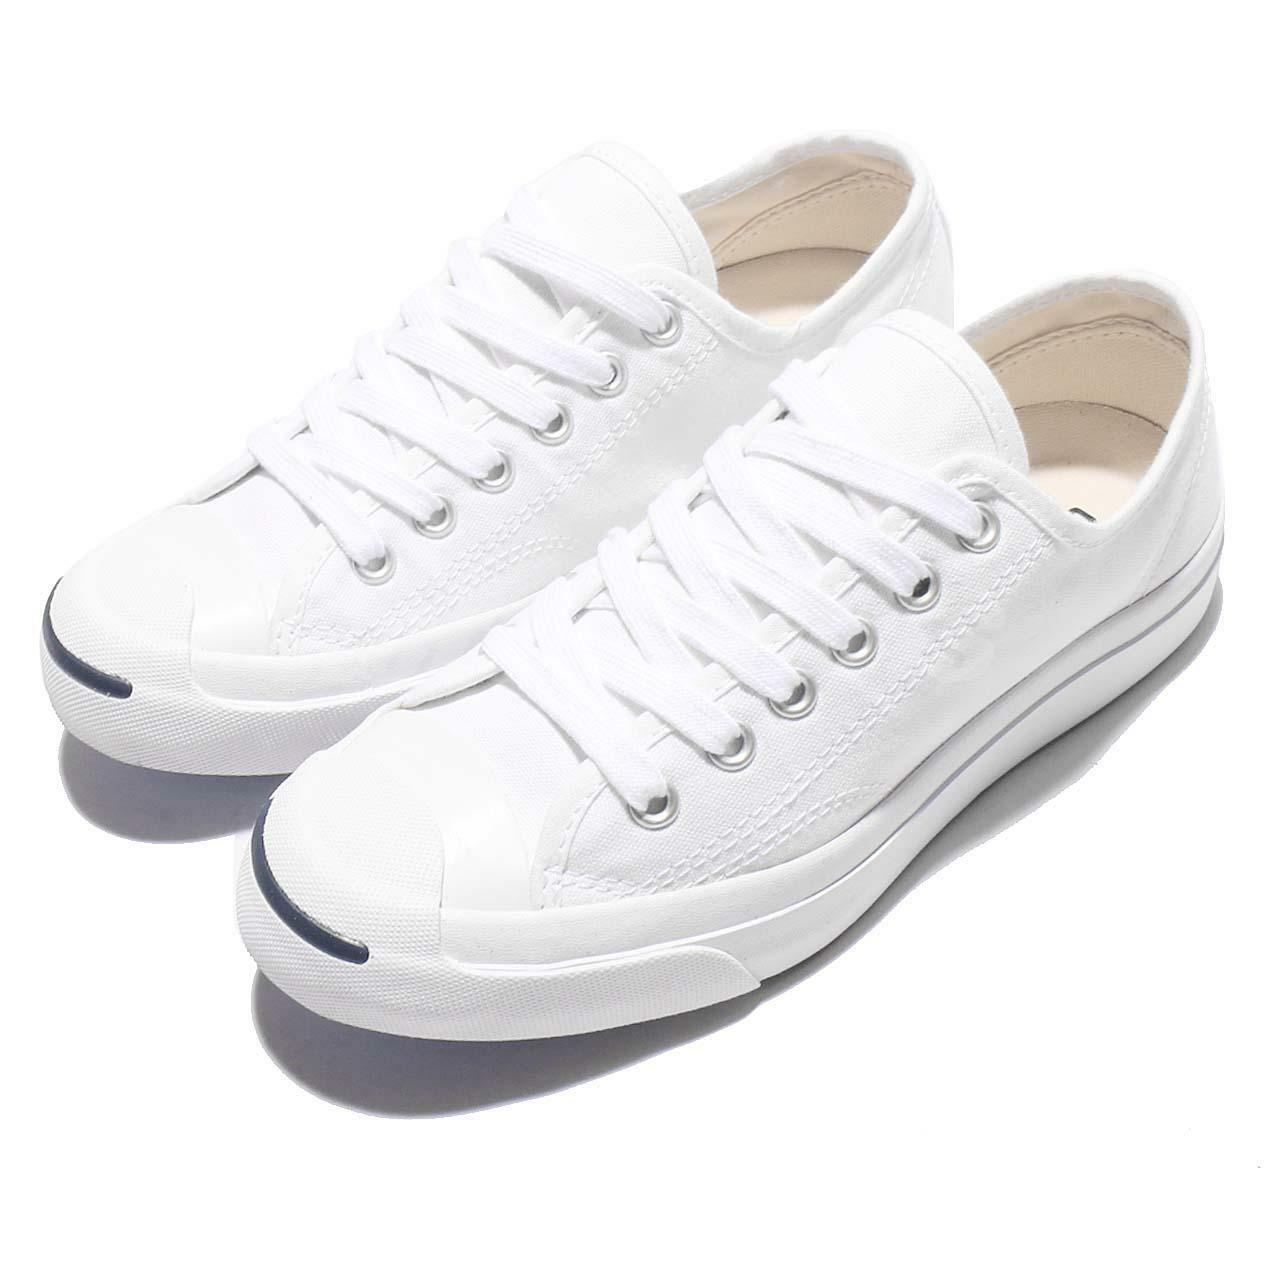 Converse Jack Purcell CP OX White Canvas Uomo Donna Classic Casual Shoes 1Q698